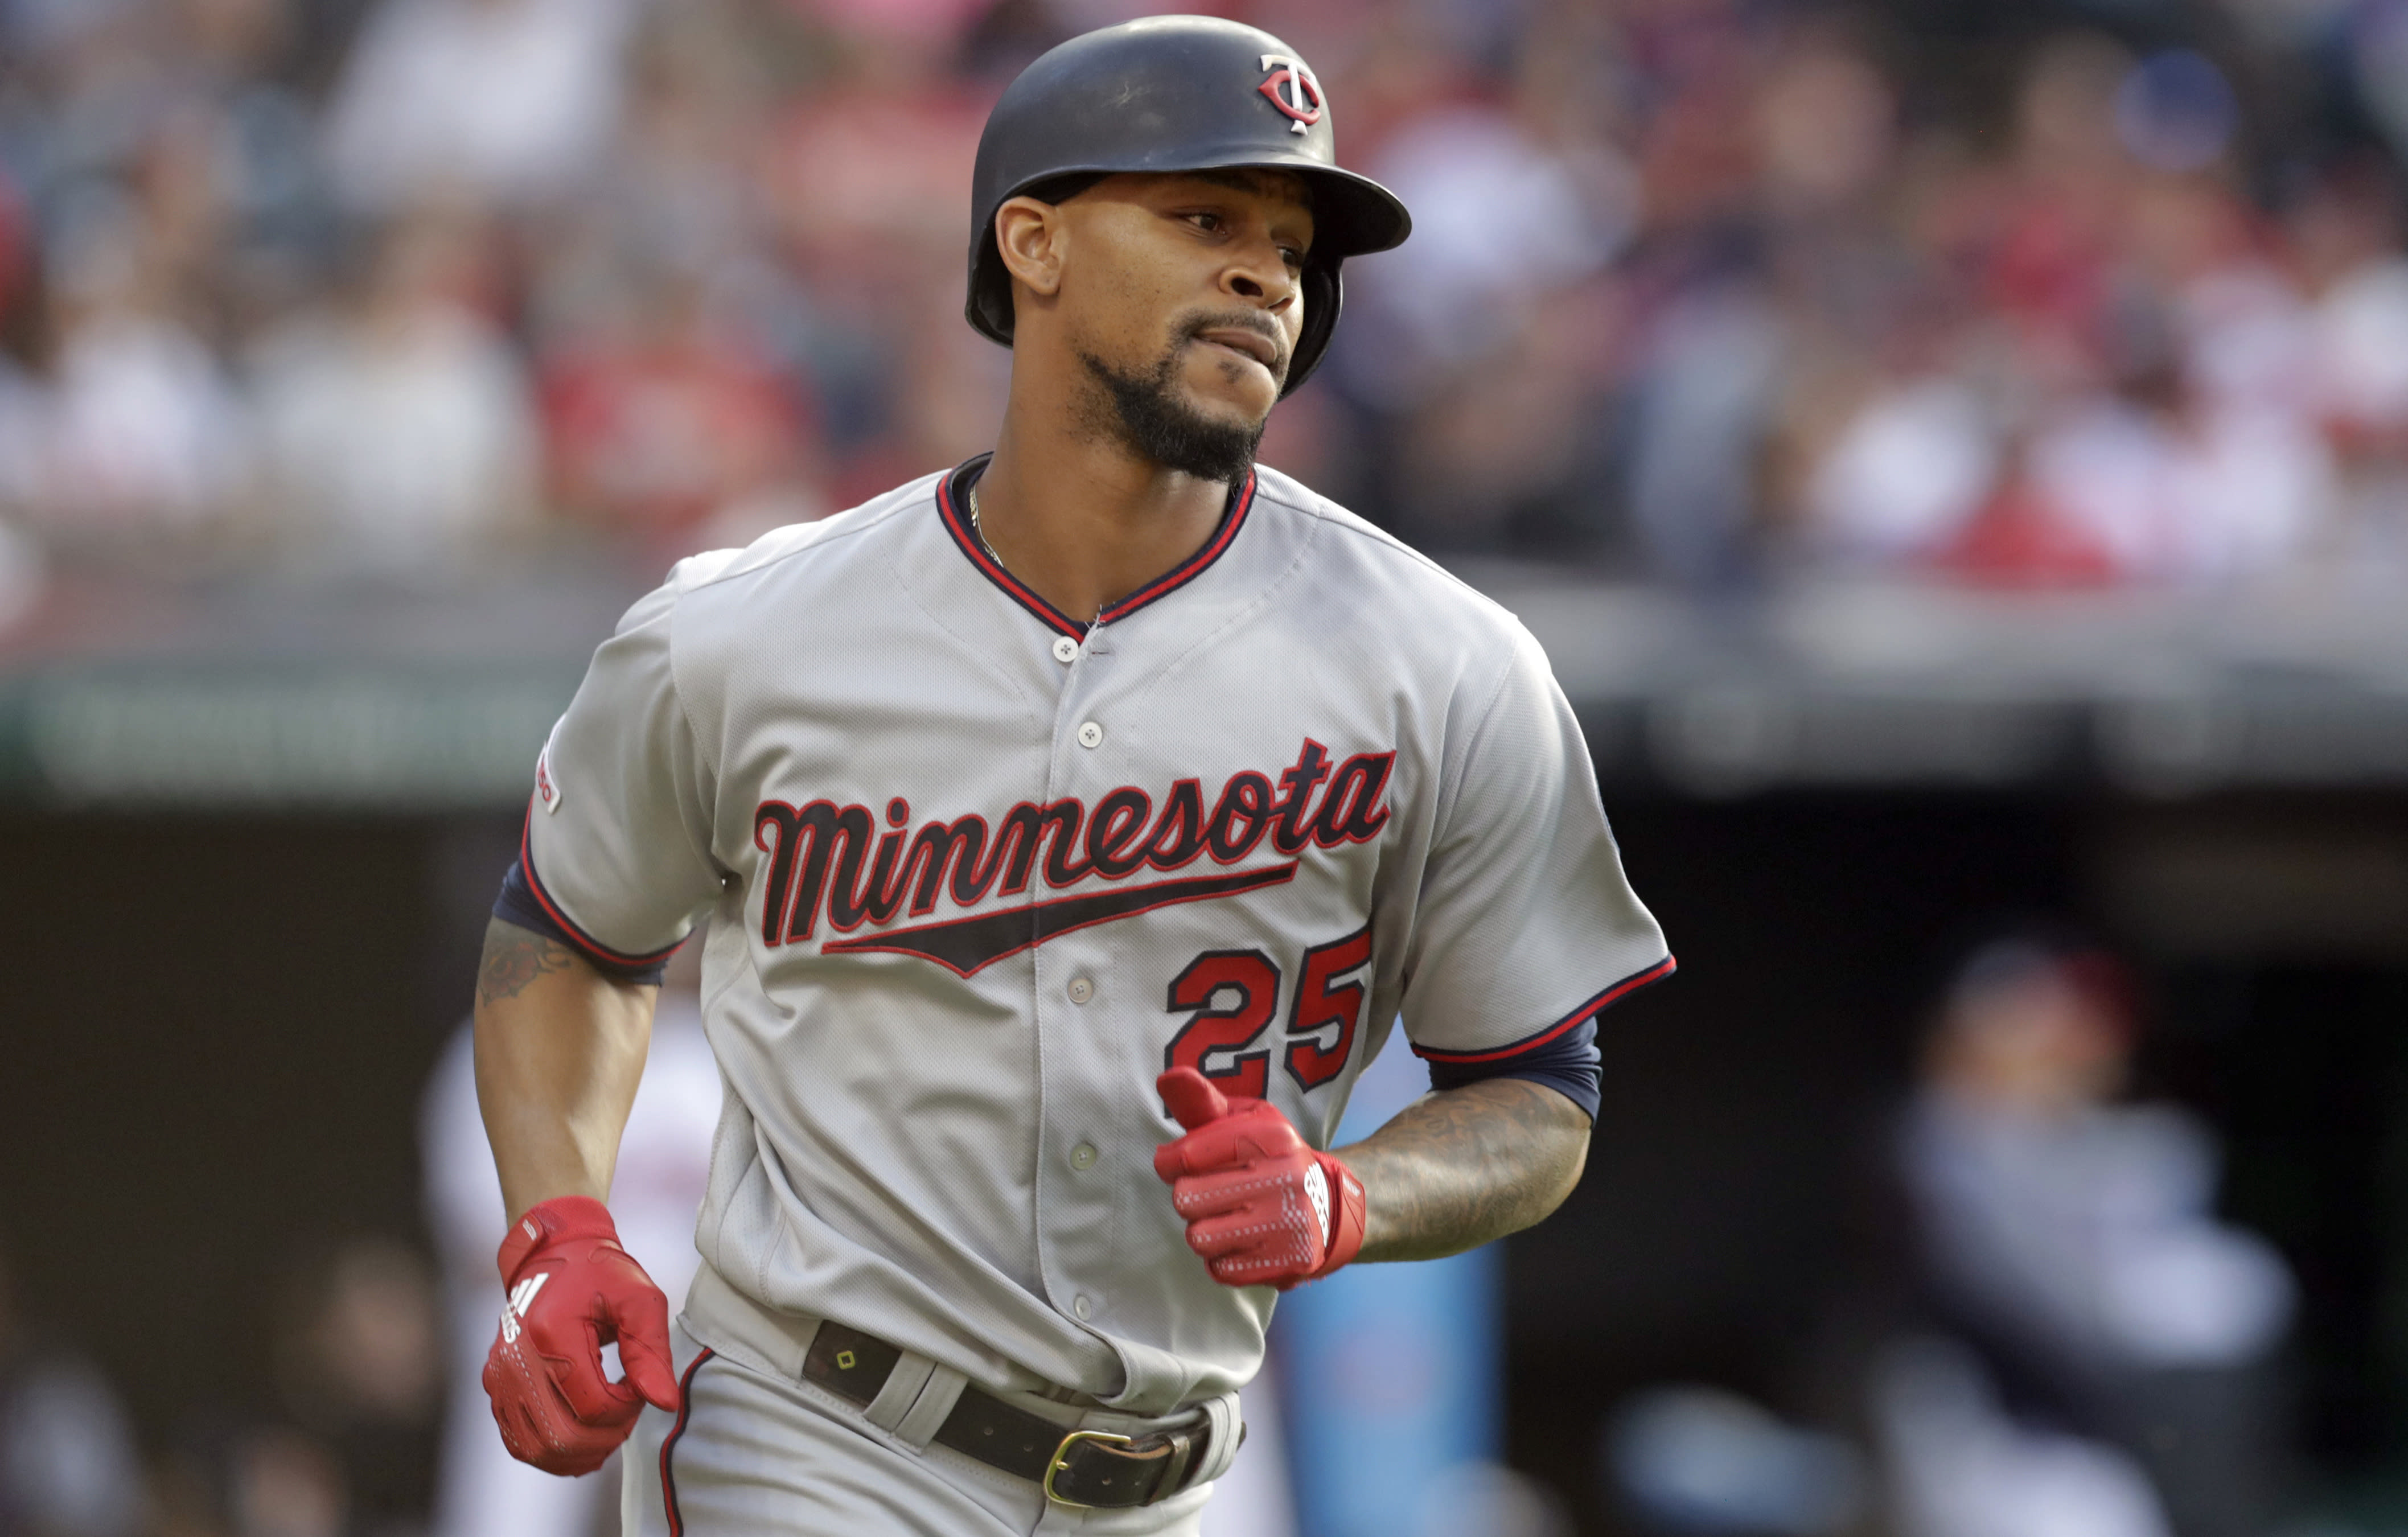 FILE - In this June 5, 2019, file photo, Minnesota Twins' Byron Buxton runs the bases after hitting a three-run home run in the second inning of the team's baseball game against the Cleveland Indians in Cleveland. Buxton is among the players who probably benefited from baseball's virus-induced delay. The oft-injured Twins speedster was coming off a major shoulder surgery. (AP Photo/Tony Dejak, File)